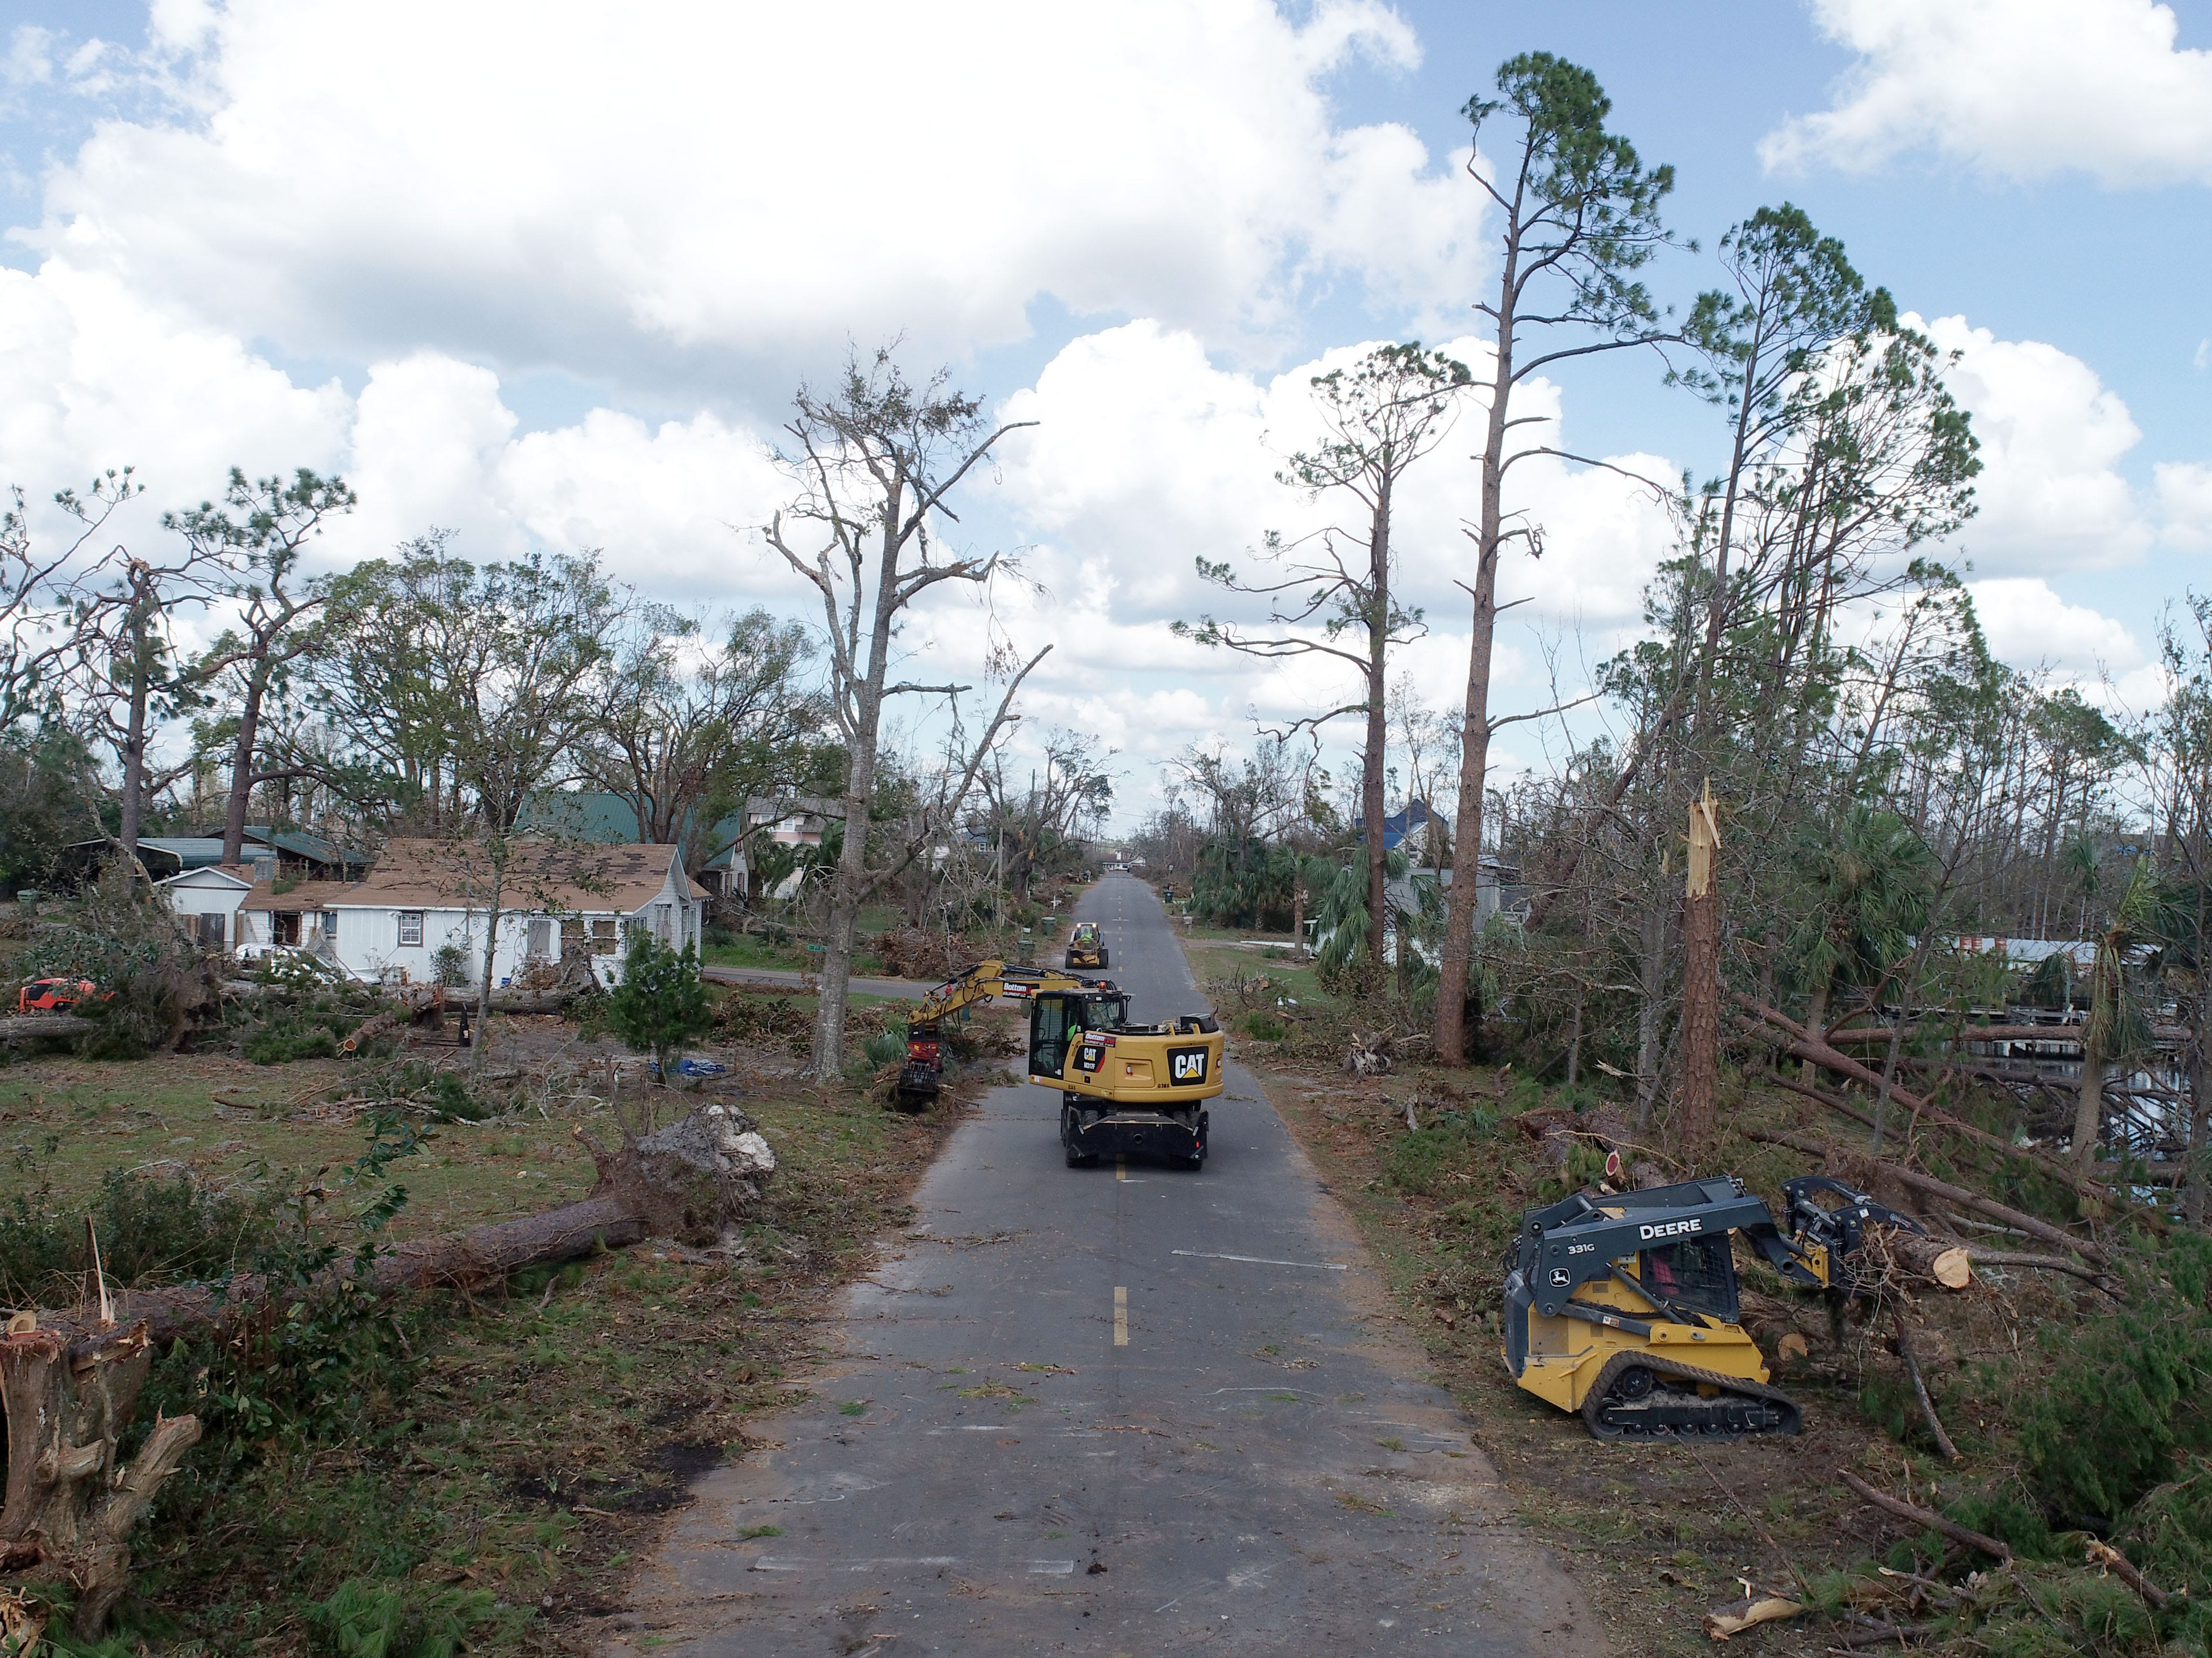 Crews haul away downed pine trees Wednesday, Oct. 17, 2018, in Lynn Haven, Florida, one week after Hurricane Michael made landfall in Florida's Panhandle.